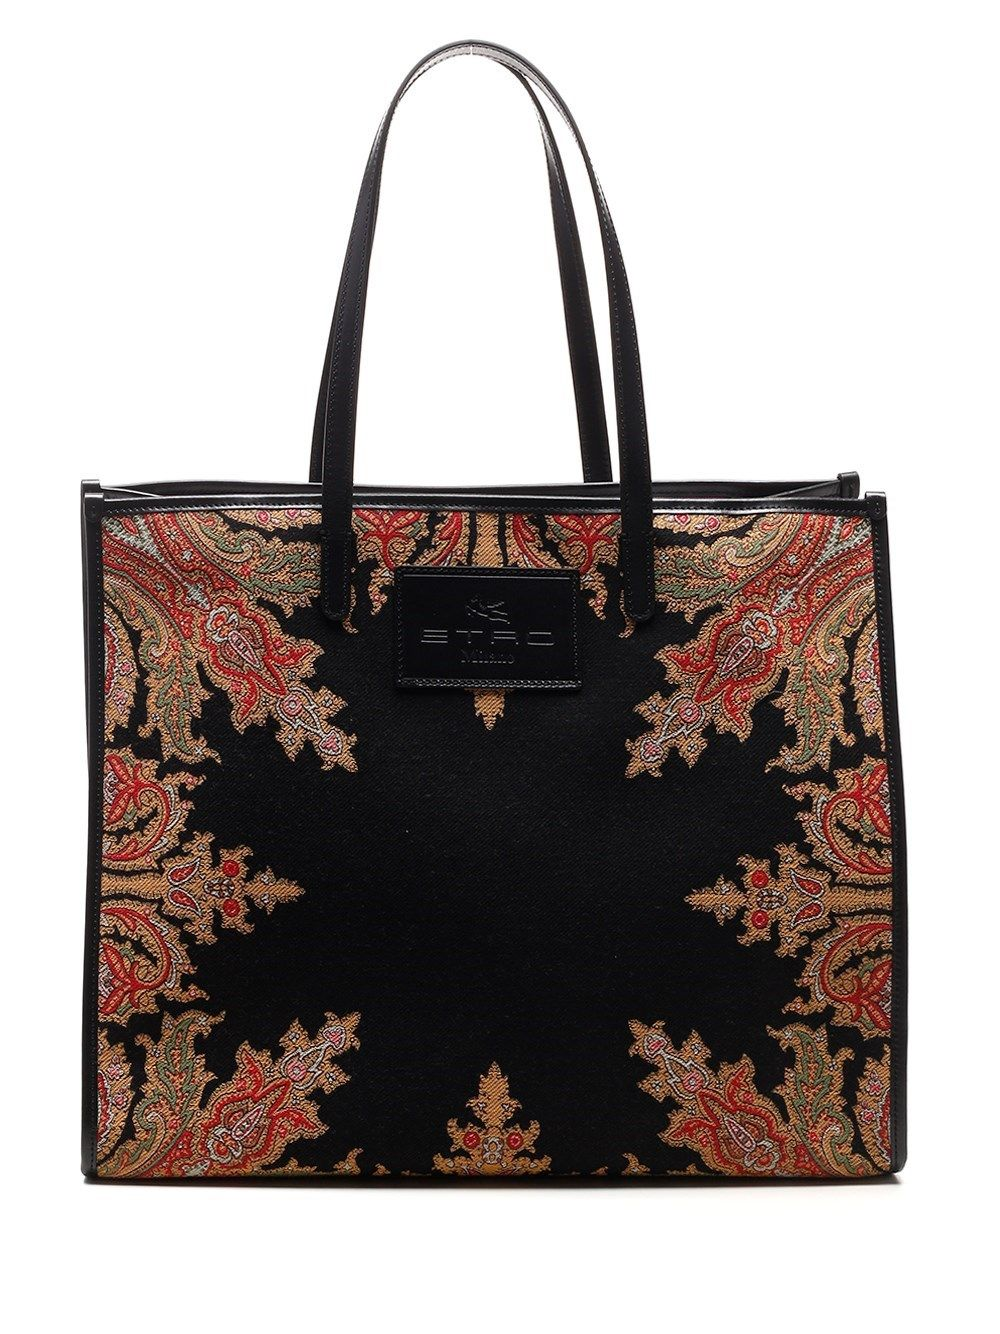 Etro ETRO WOMEN'S 1N00988601 BLACK OTHER MATERIALS TOTE